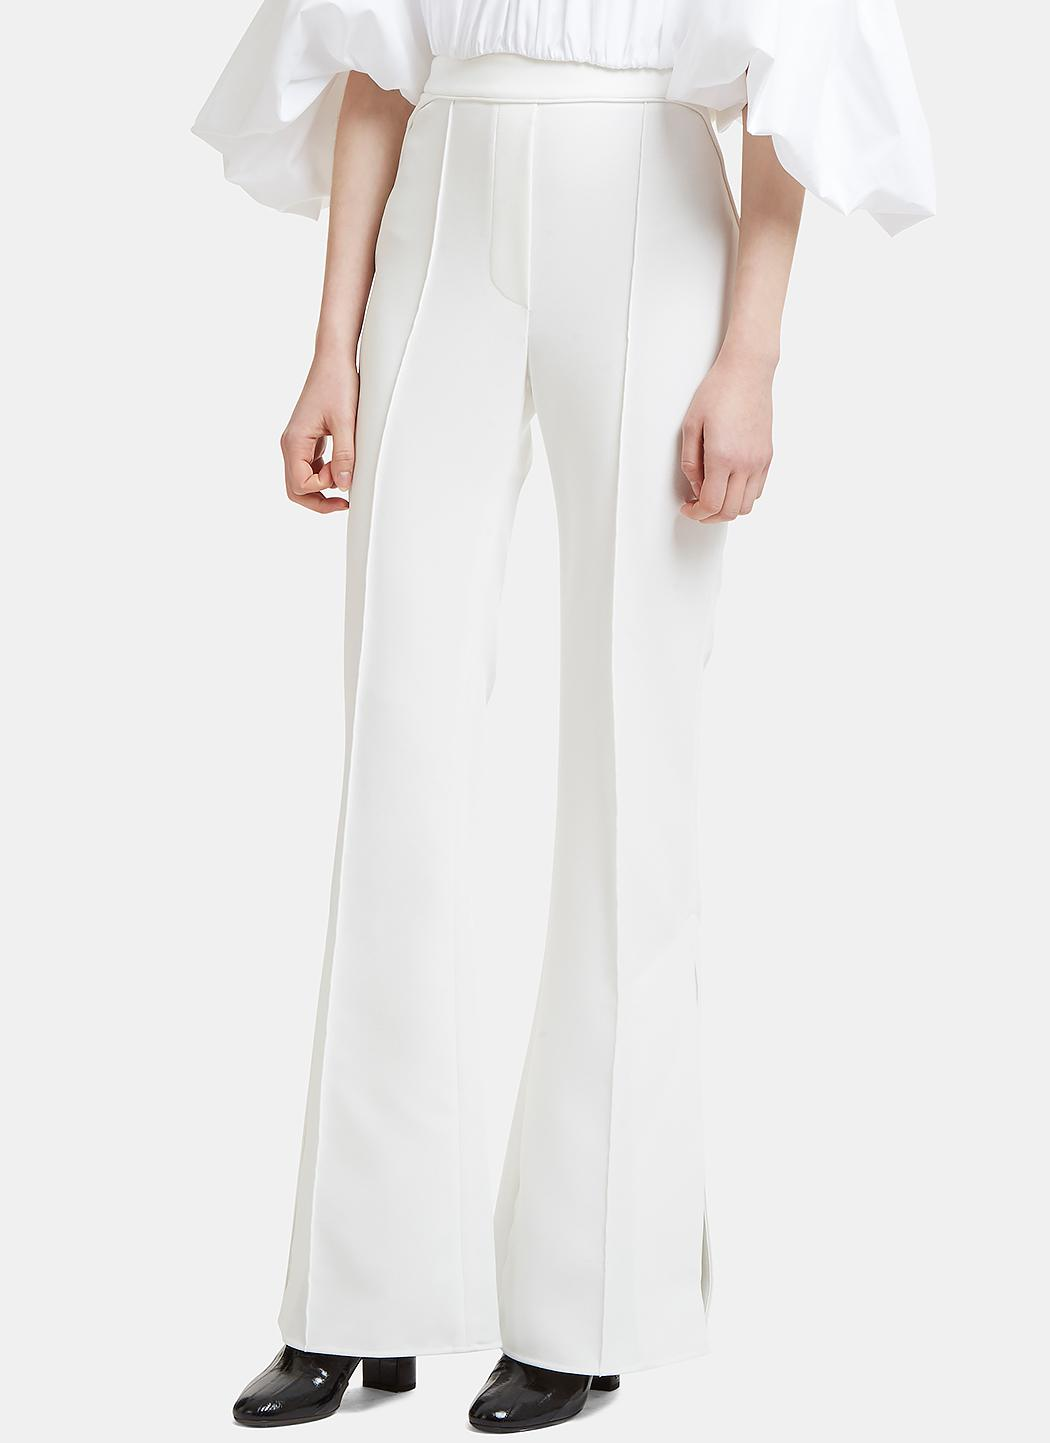 Ellery Orlando piped bootleg trousers Shipping Discount Authentic Marketable AFqNAQA